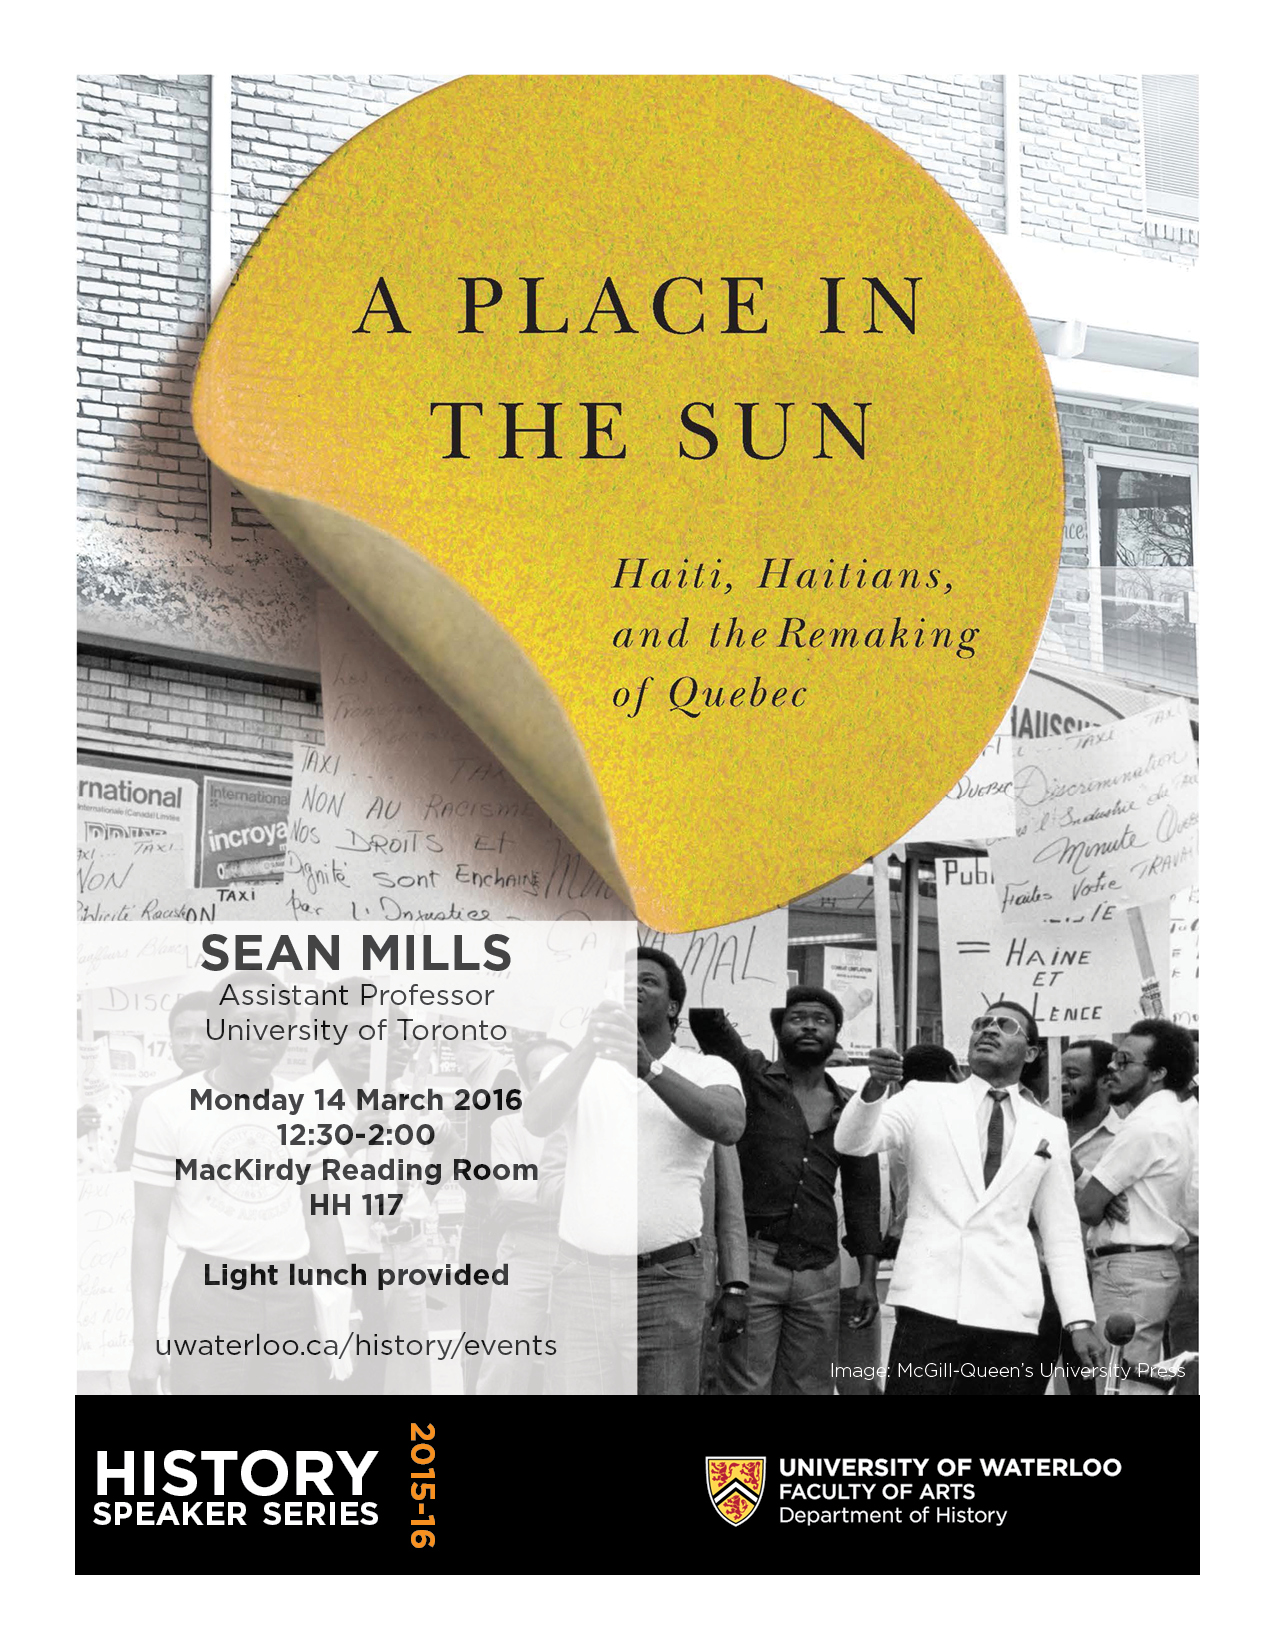 A Place in the Sun cover image with talk details.